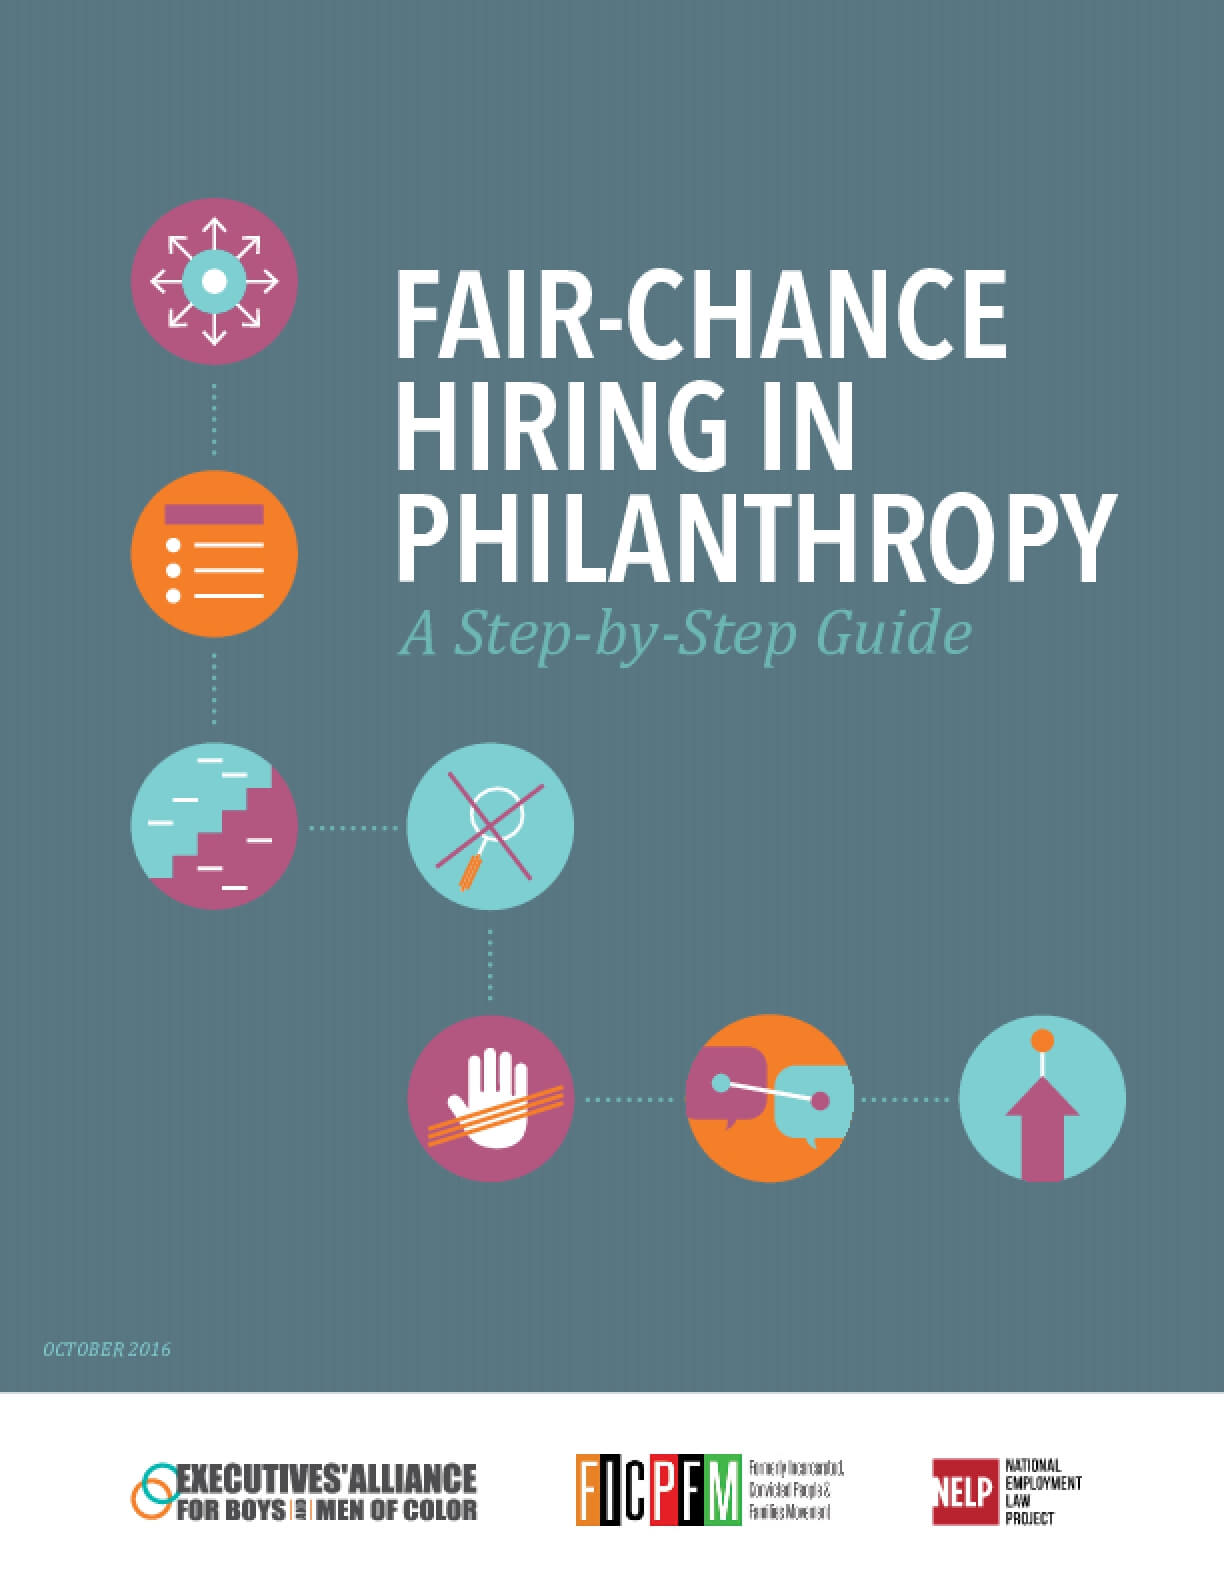 Fair-Chance Hiring in Philanthropy: A Step-by-Step Guide